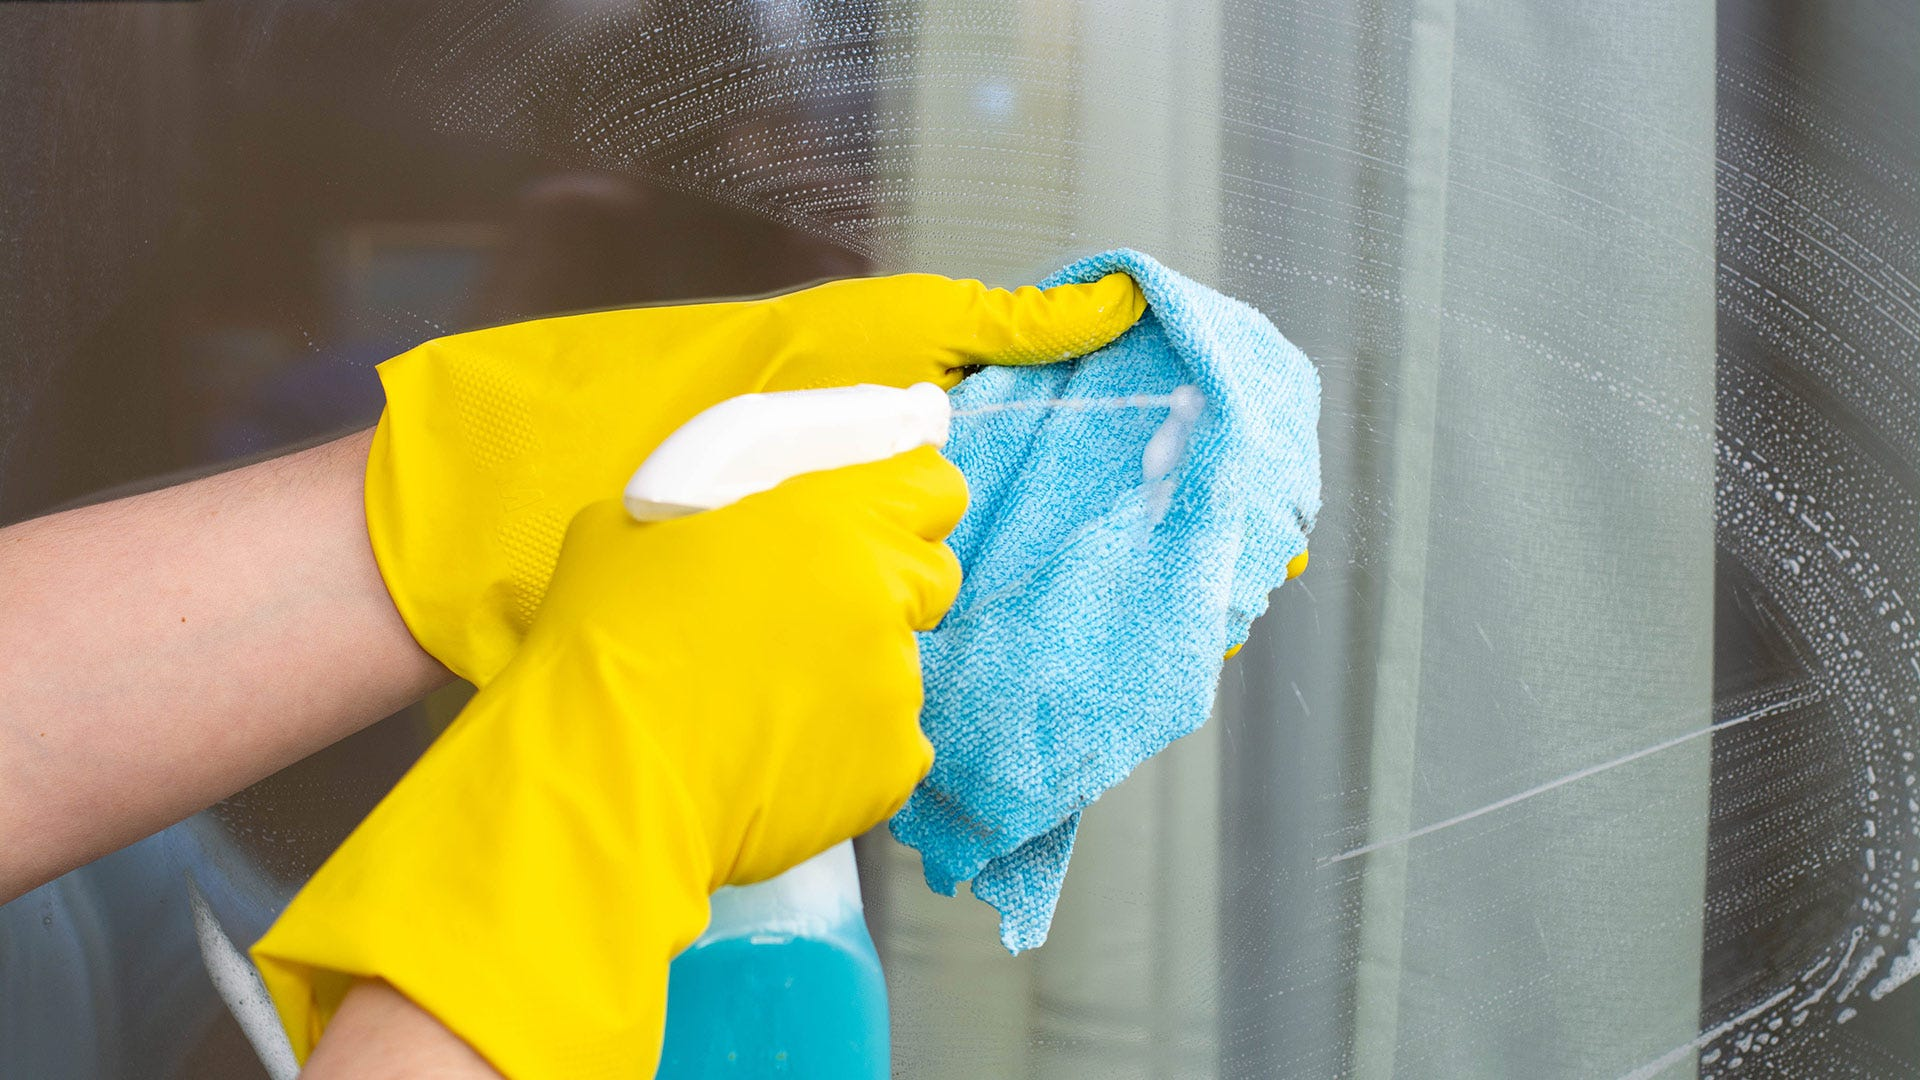 A person spraying window cleaner on microfiber cloth in front of a soapy window.